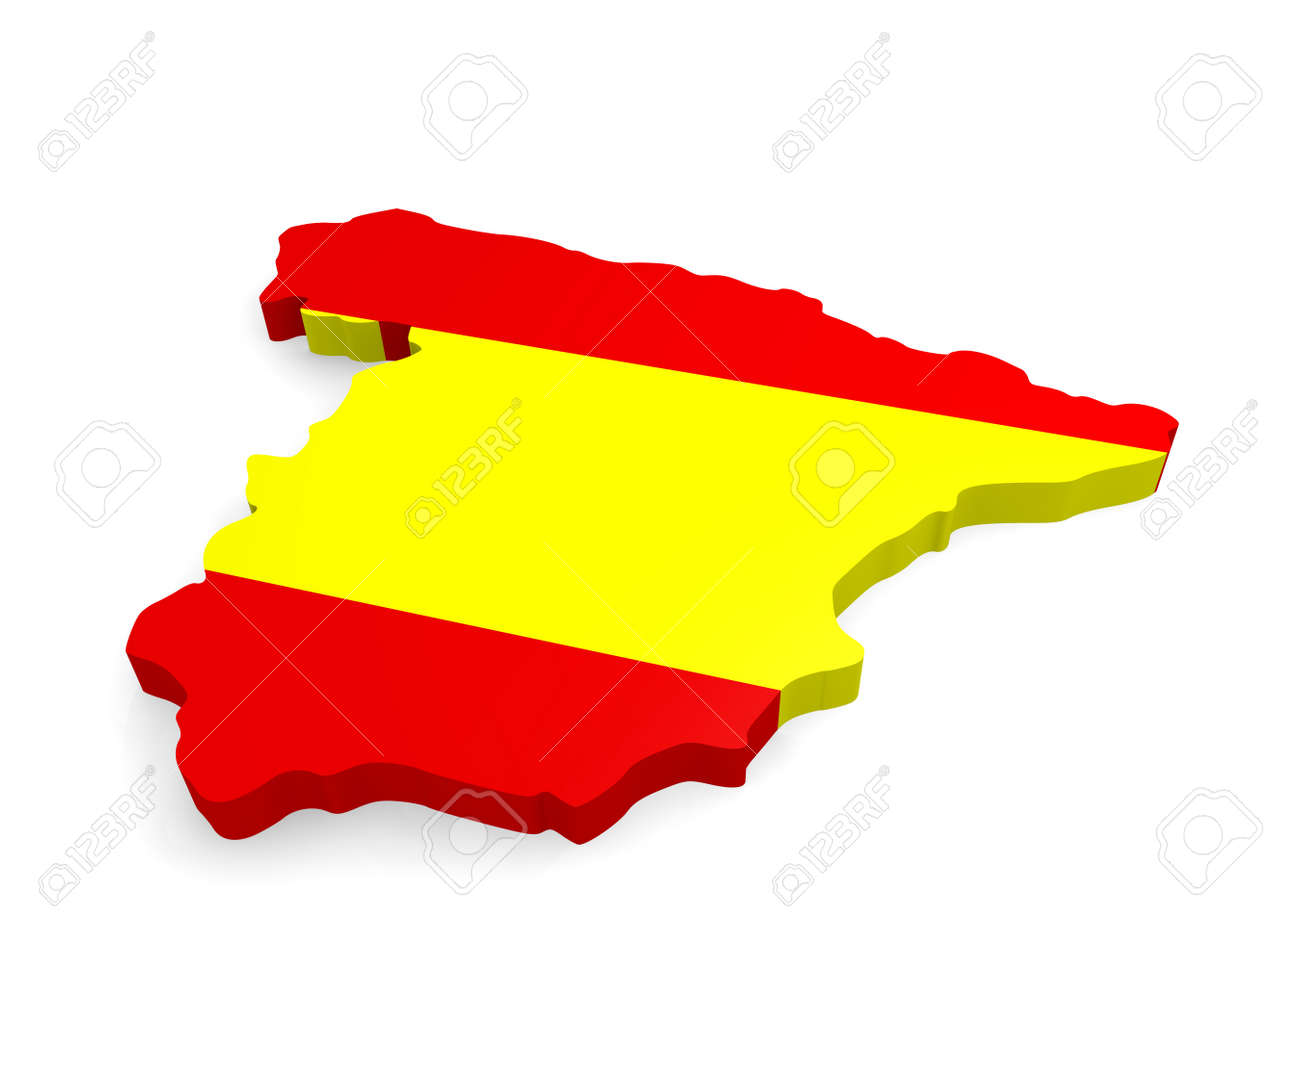 3d Map Of Spain.3d Map Of Spain On A White Background